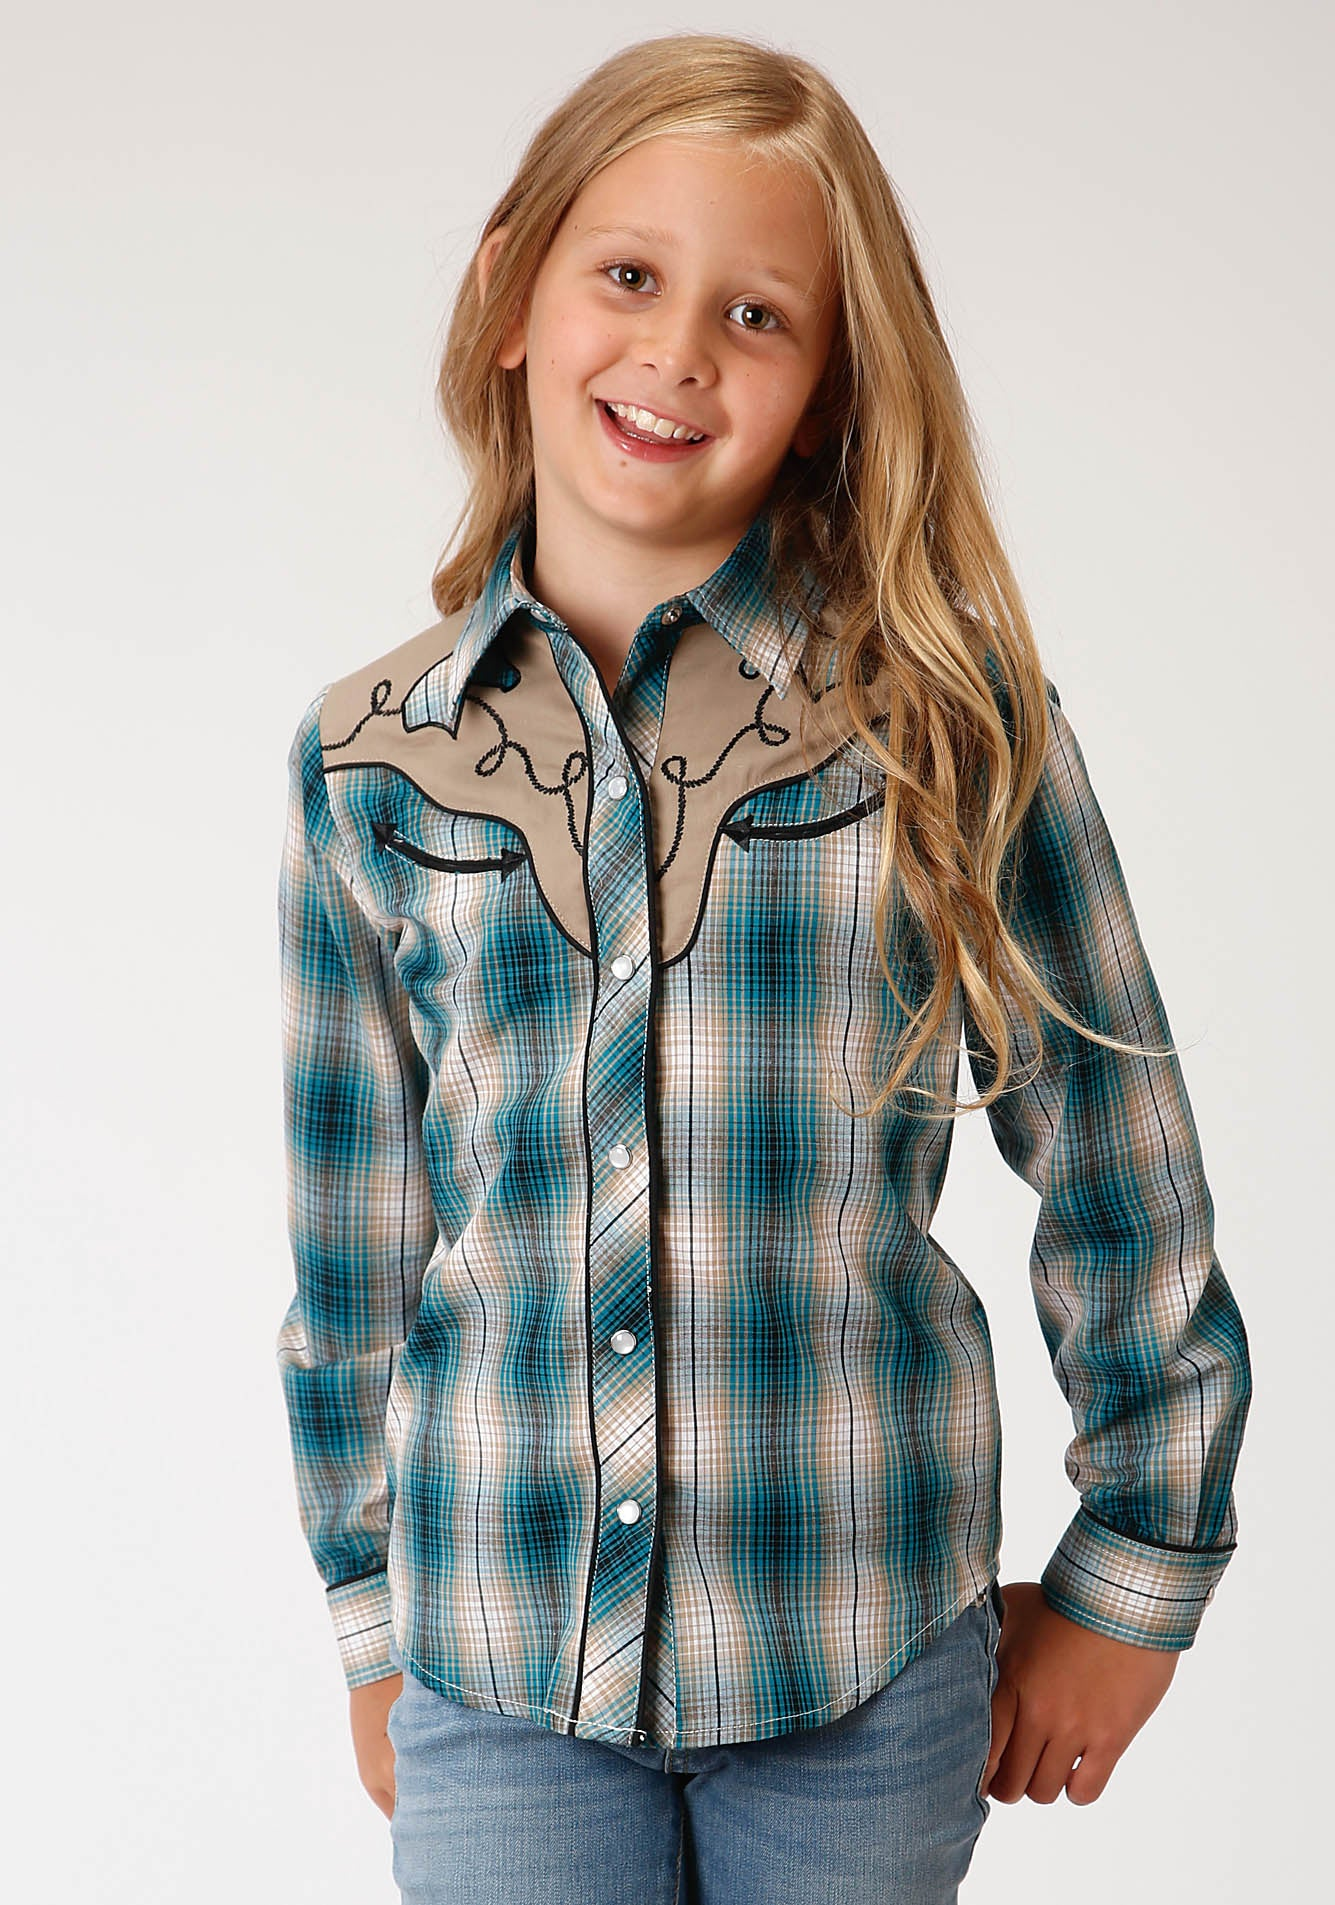 ROPER GIRLS GREEN 00213 TEAL,TAN,CREAM, & BLACK PLAID KARMAN SPECIAL STYLES LONG SLEEVE